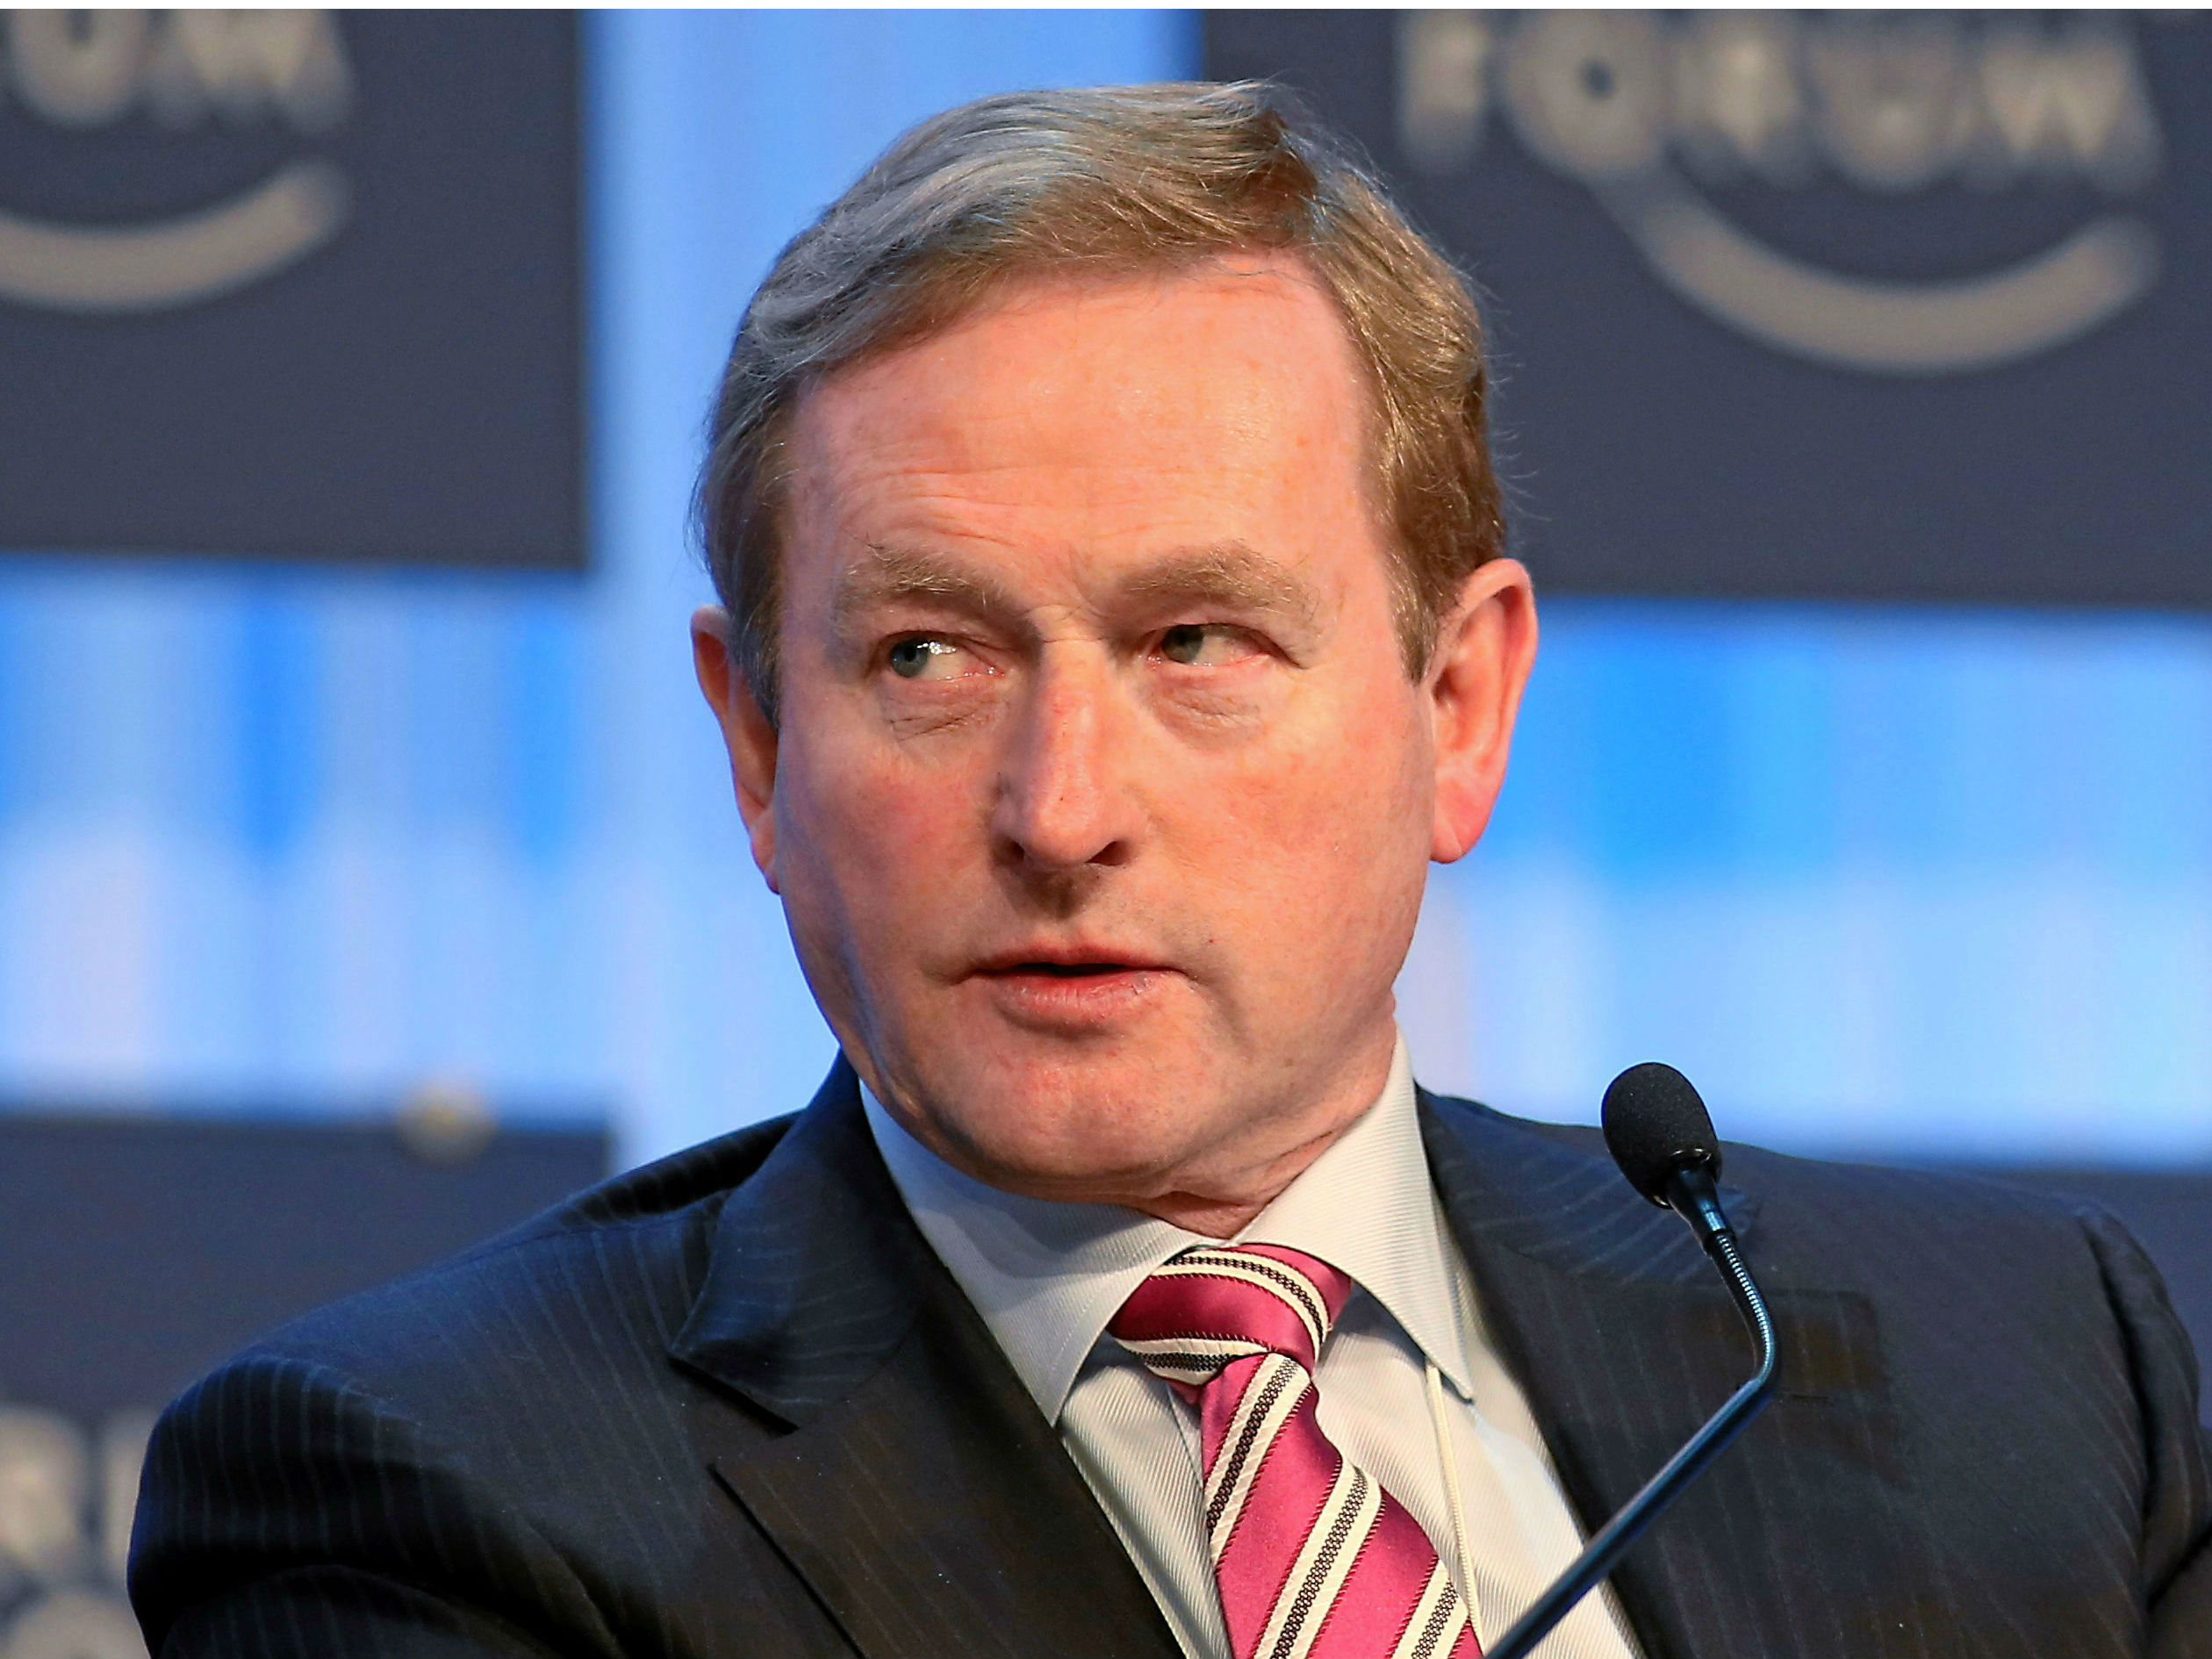 Enda Kenny Stays Tight-Lipped On Gerry Adams